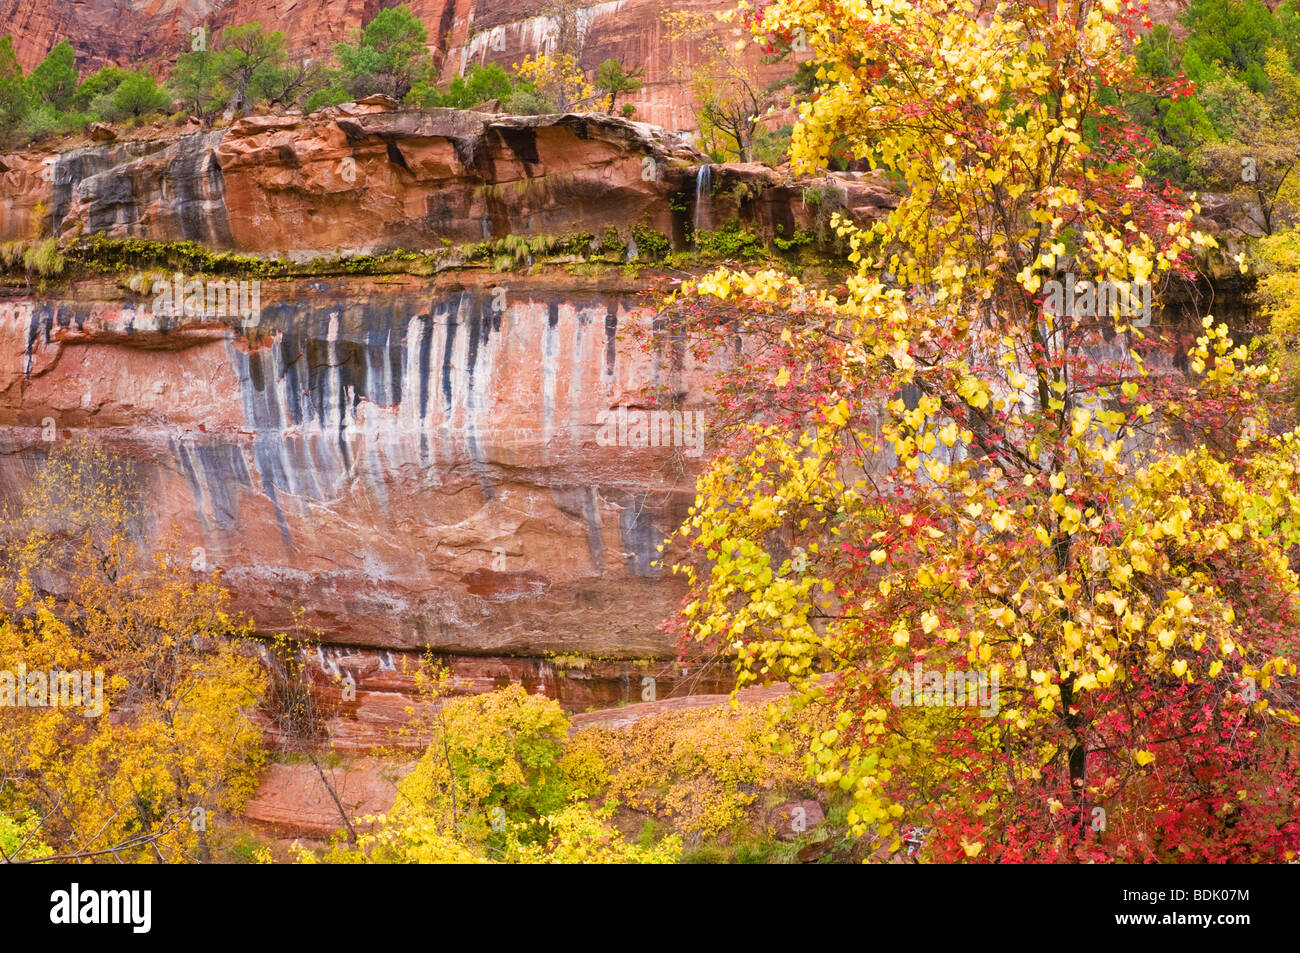 Fall color and cascade at the lower Emerald Pools, Zion National Park, Utah Stock Photo